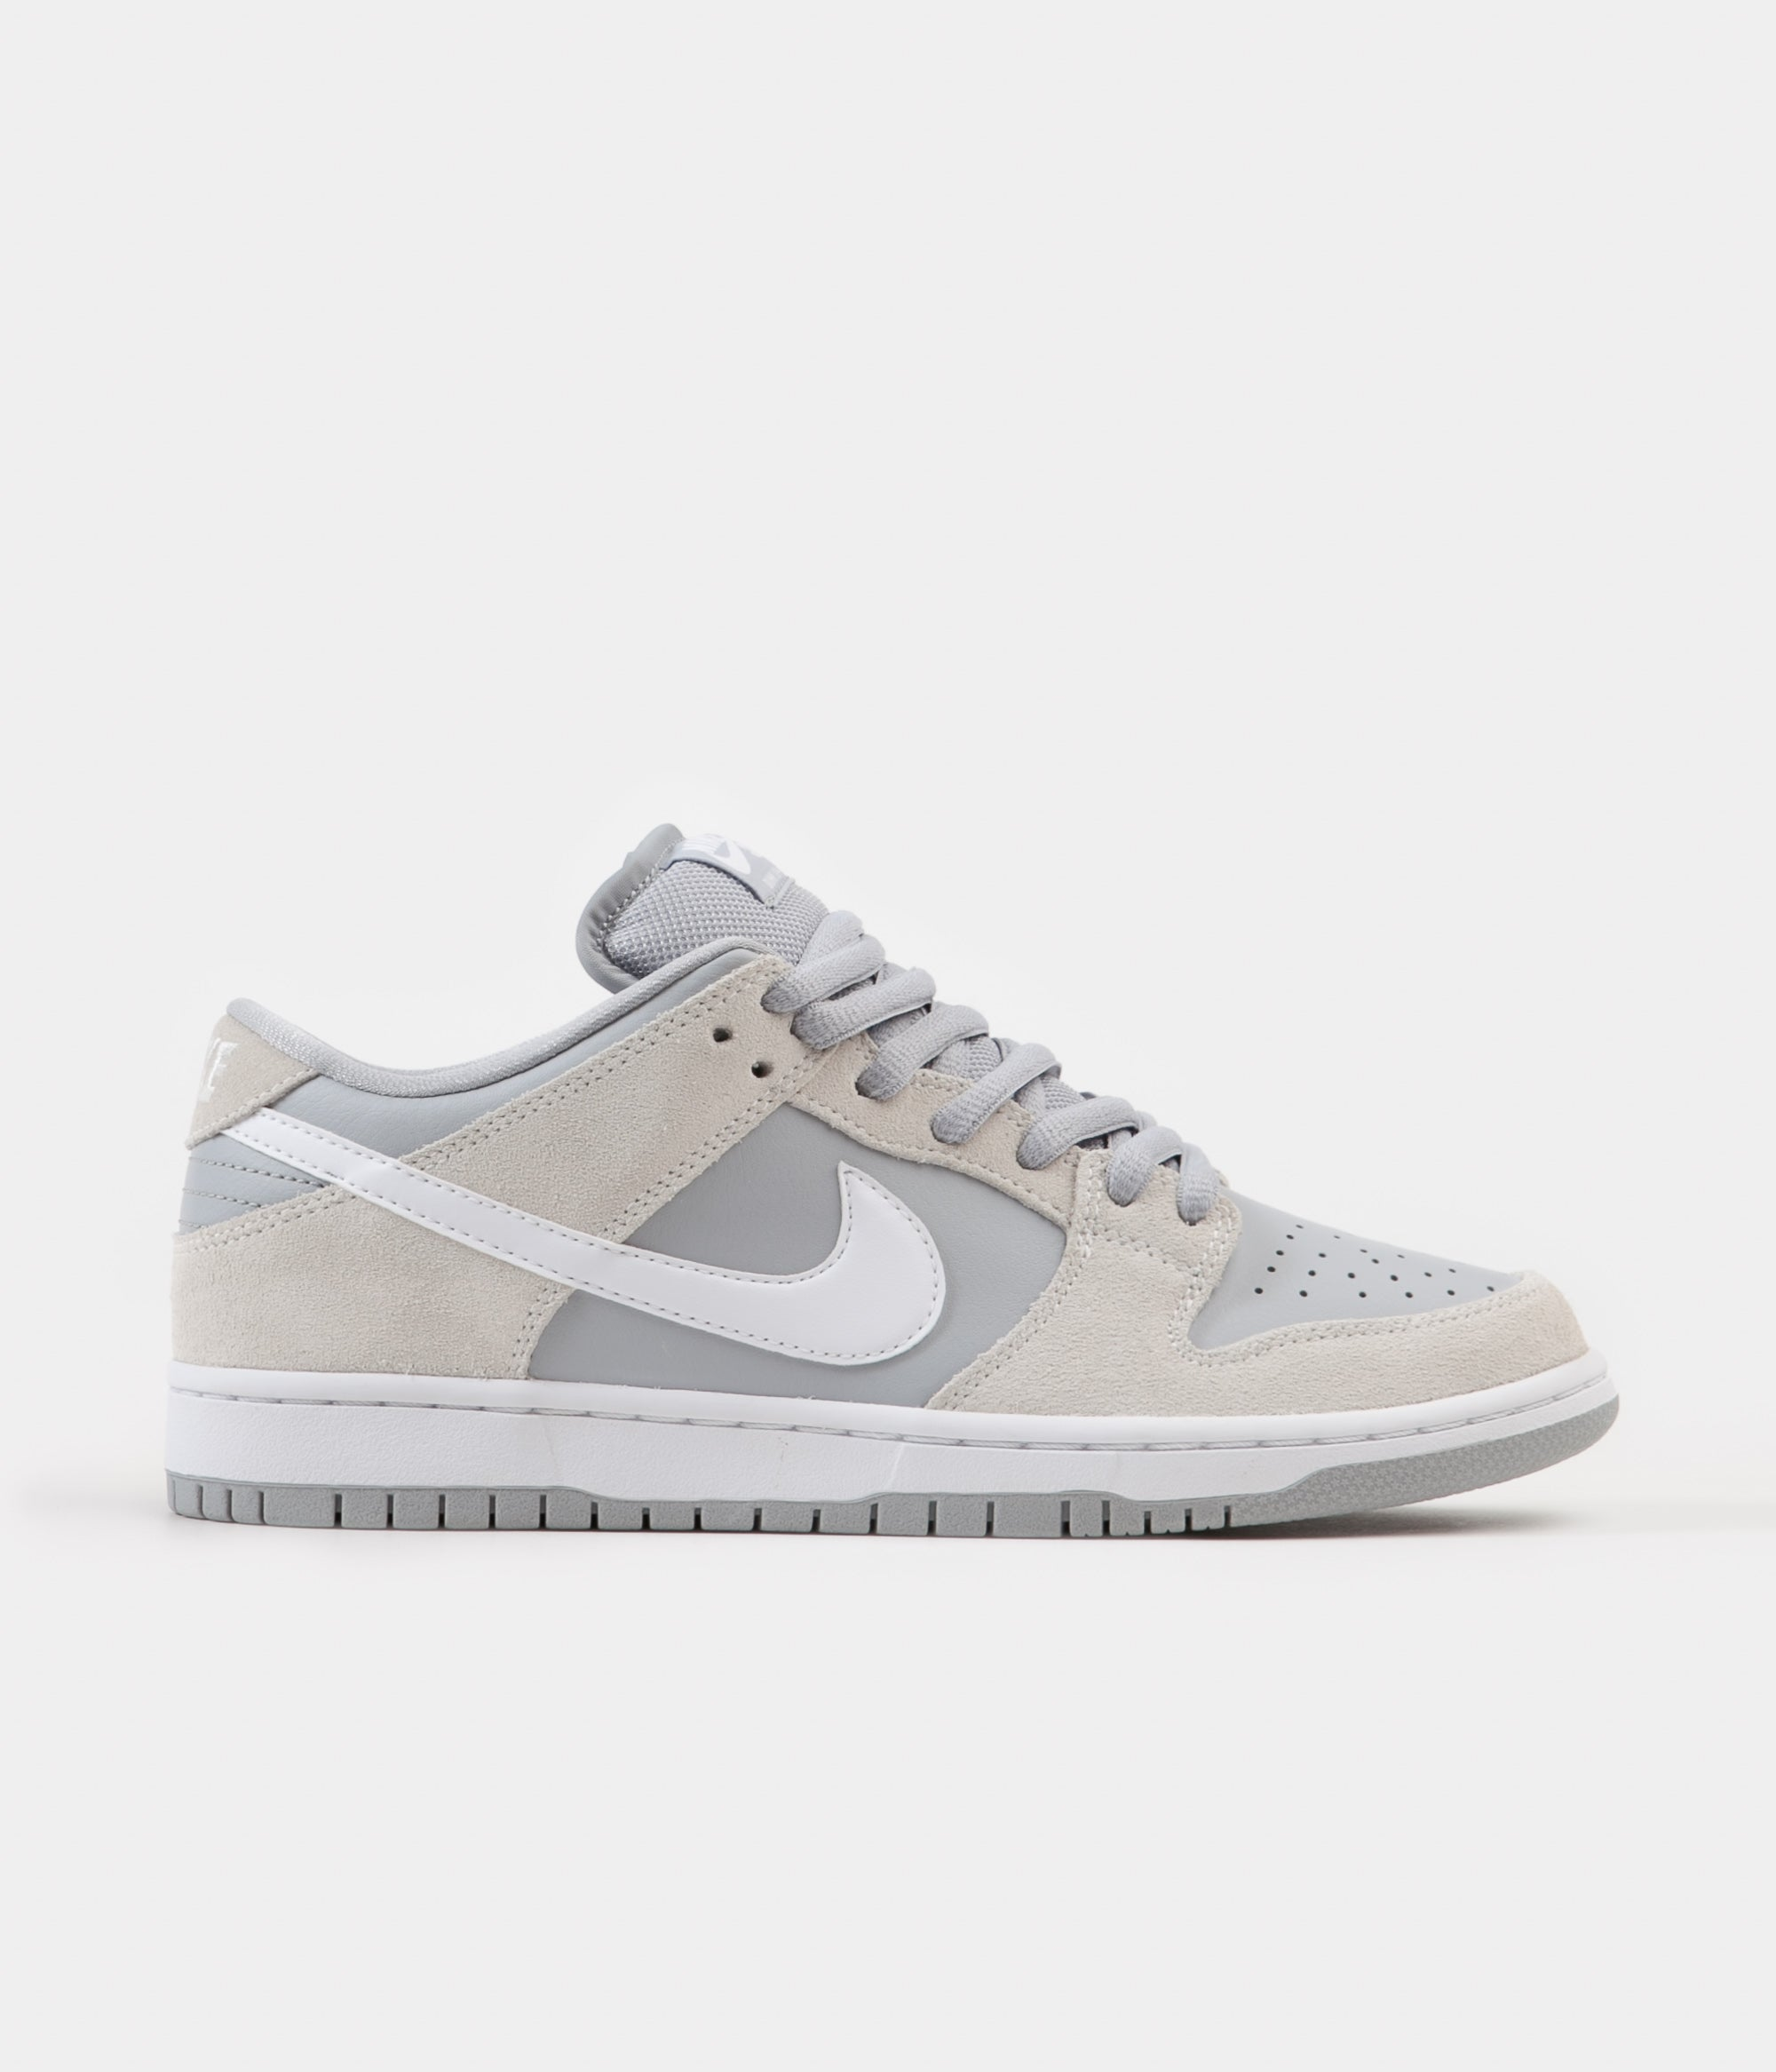 Nike SB Dunk Low TRD Shoes - Summit White   White - Wolf Grey - White 8f09f0046a0